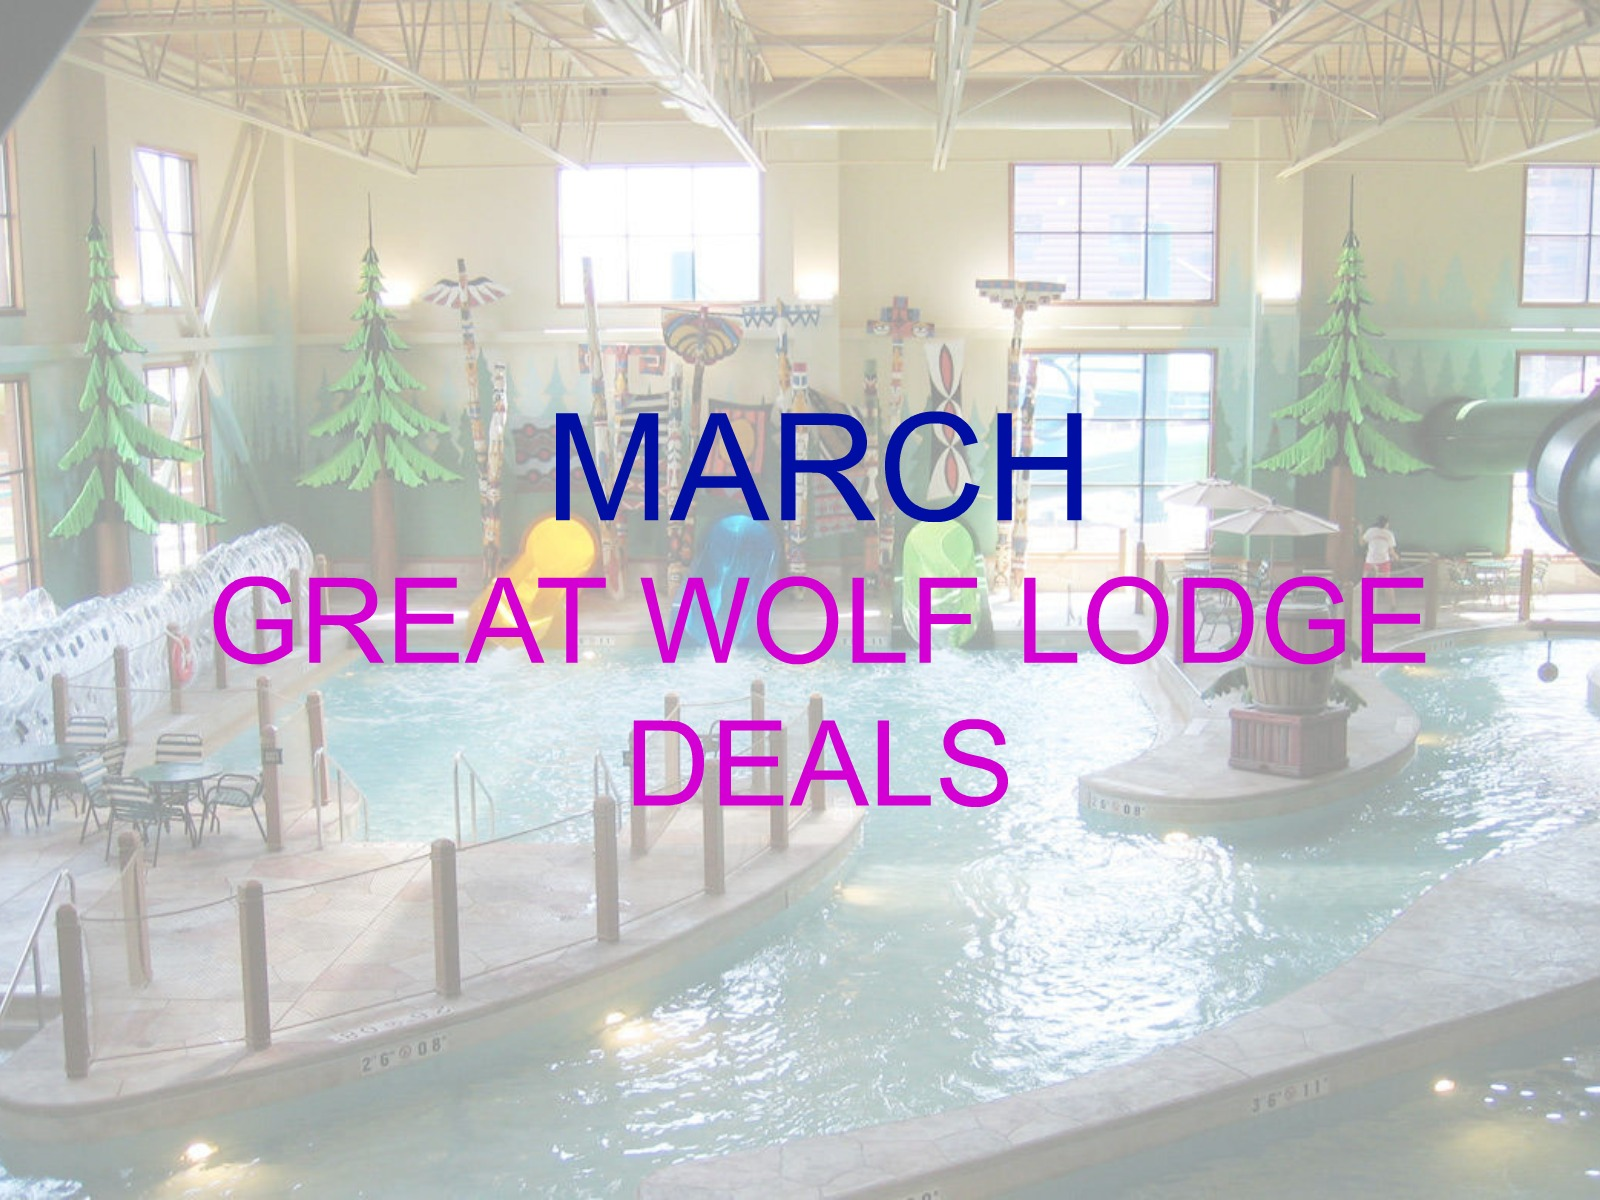 MARCH GREAT WOLF LODGE DEALS